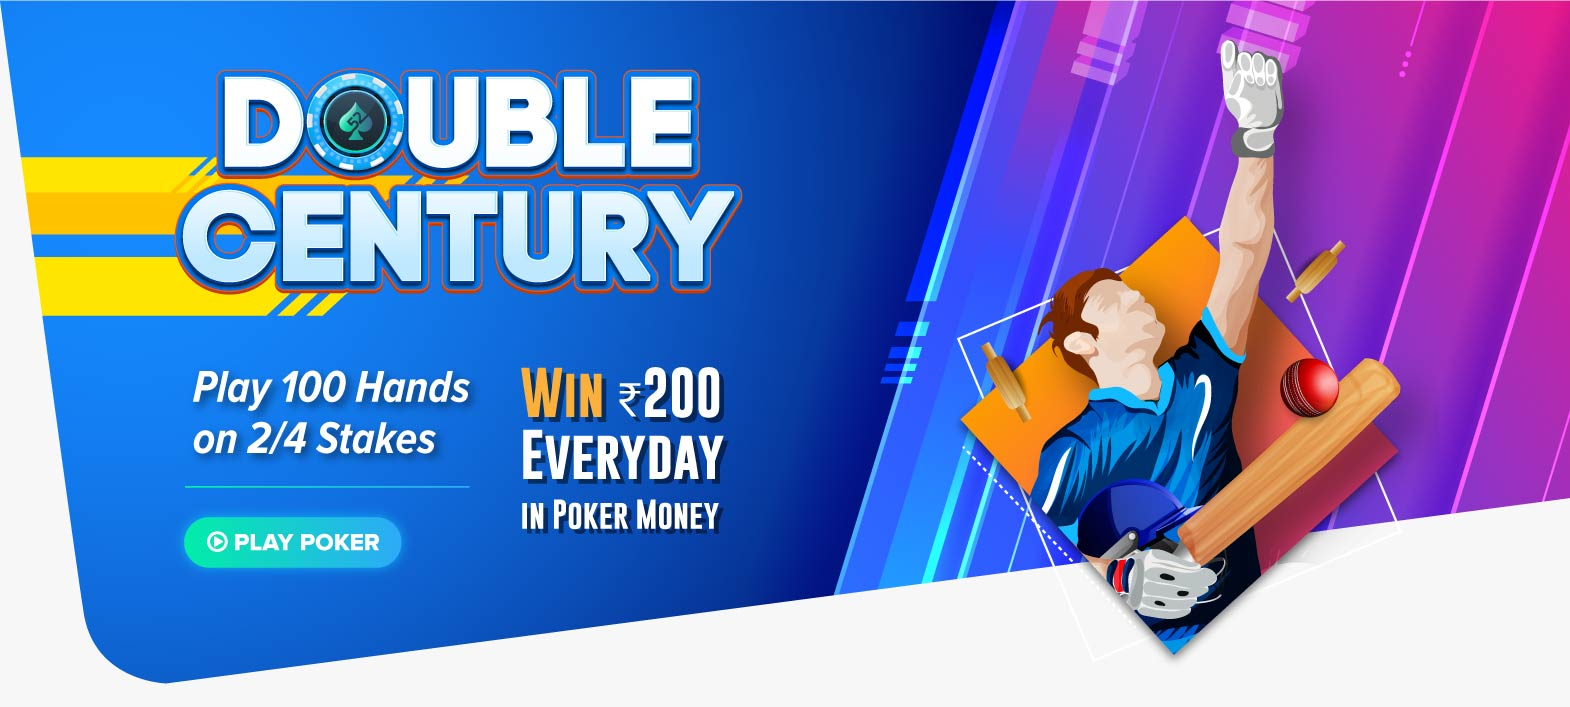 Double Century | Play Online Poker